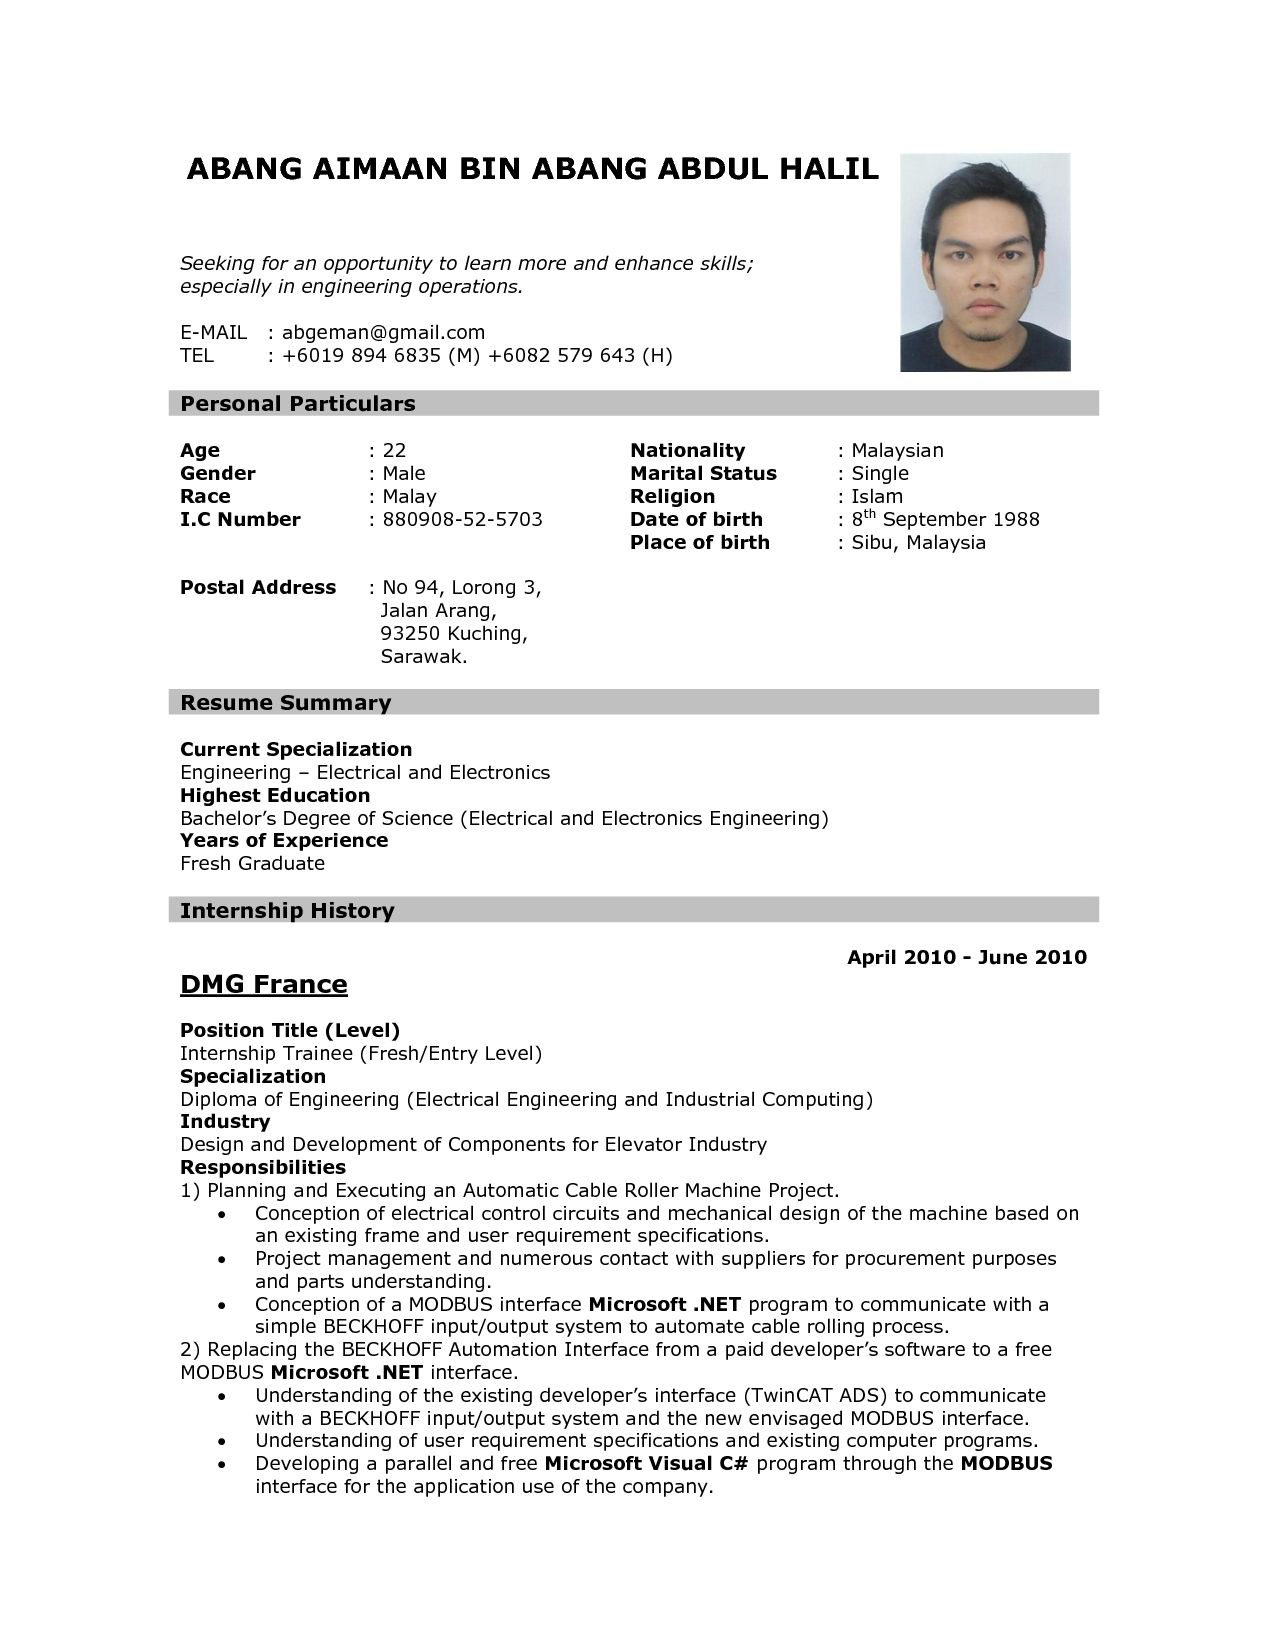 nice sample resume for applying job | Example | Pinterest | Sample ...